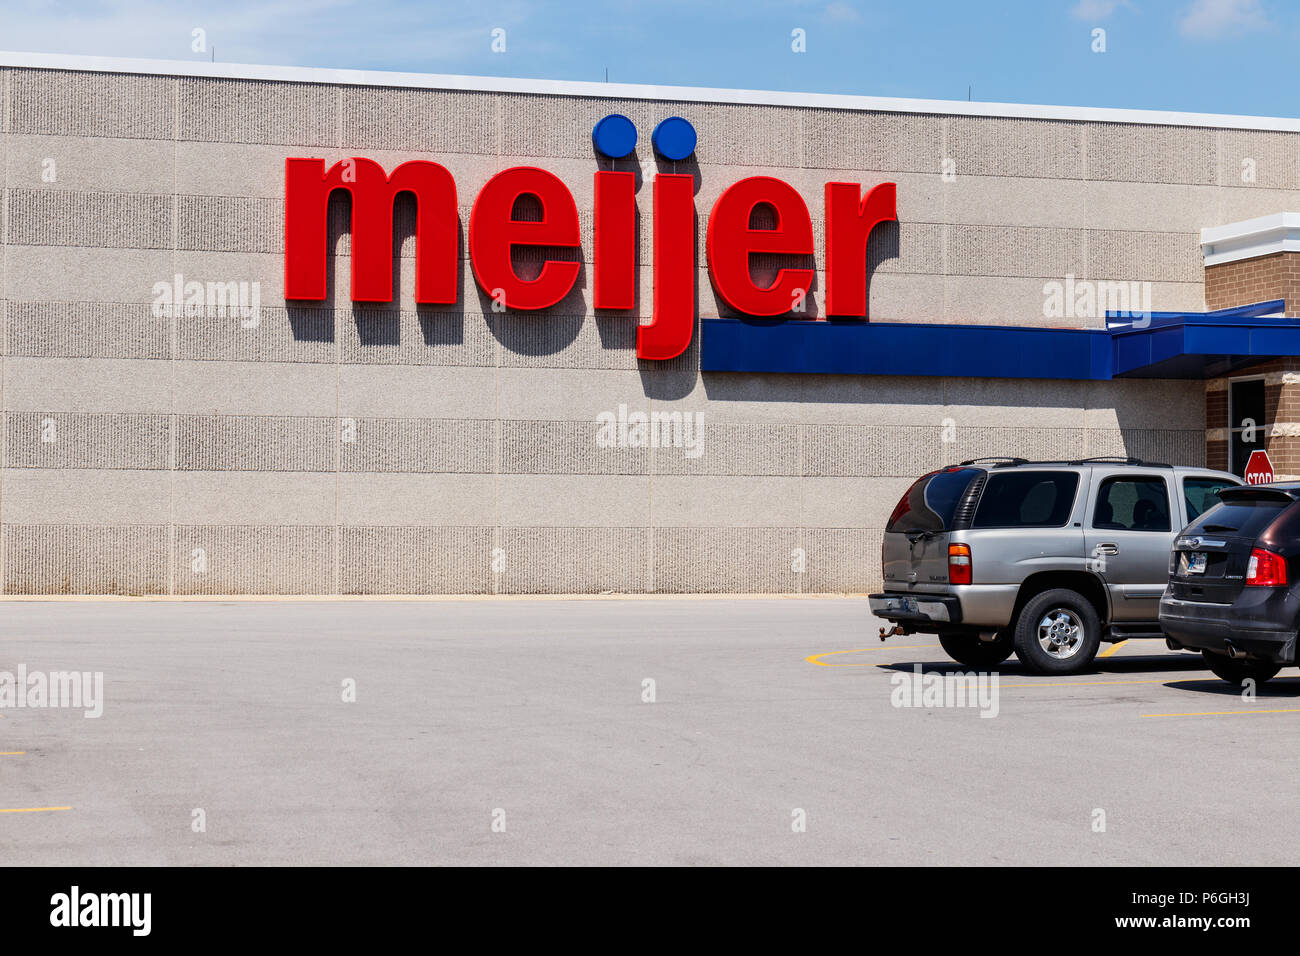 Ft. Wayne - Circa June 2018: Meijer Retail Location. Meijer is a large supercenter type retailer with over 200 locations I - Stock Image